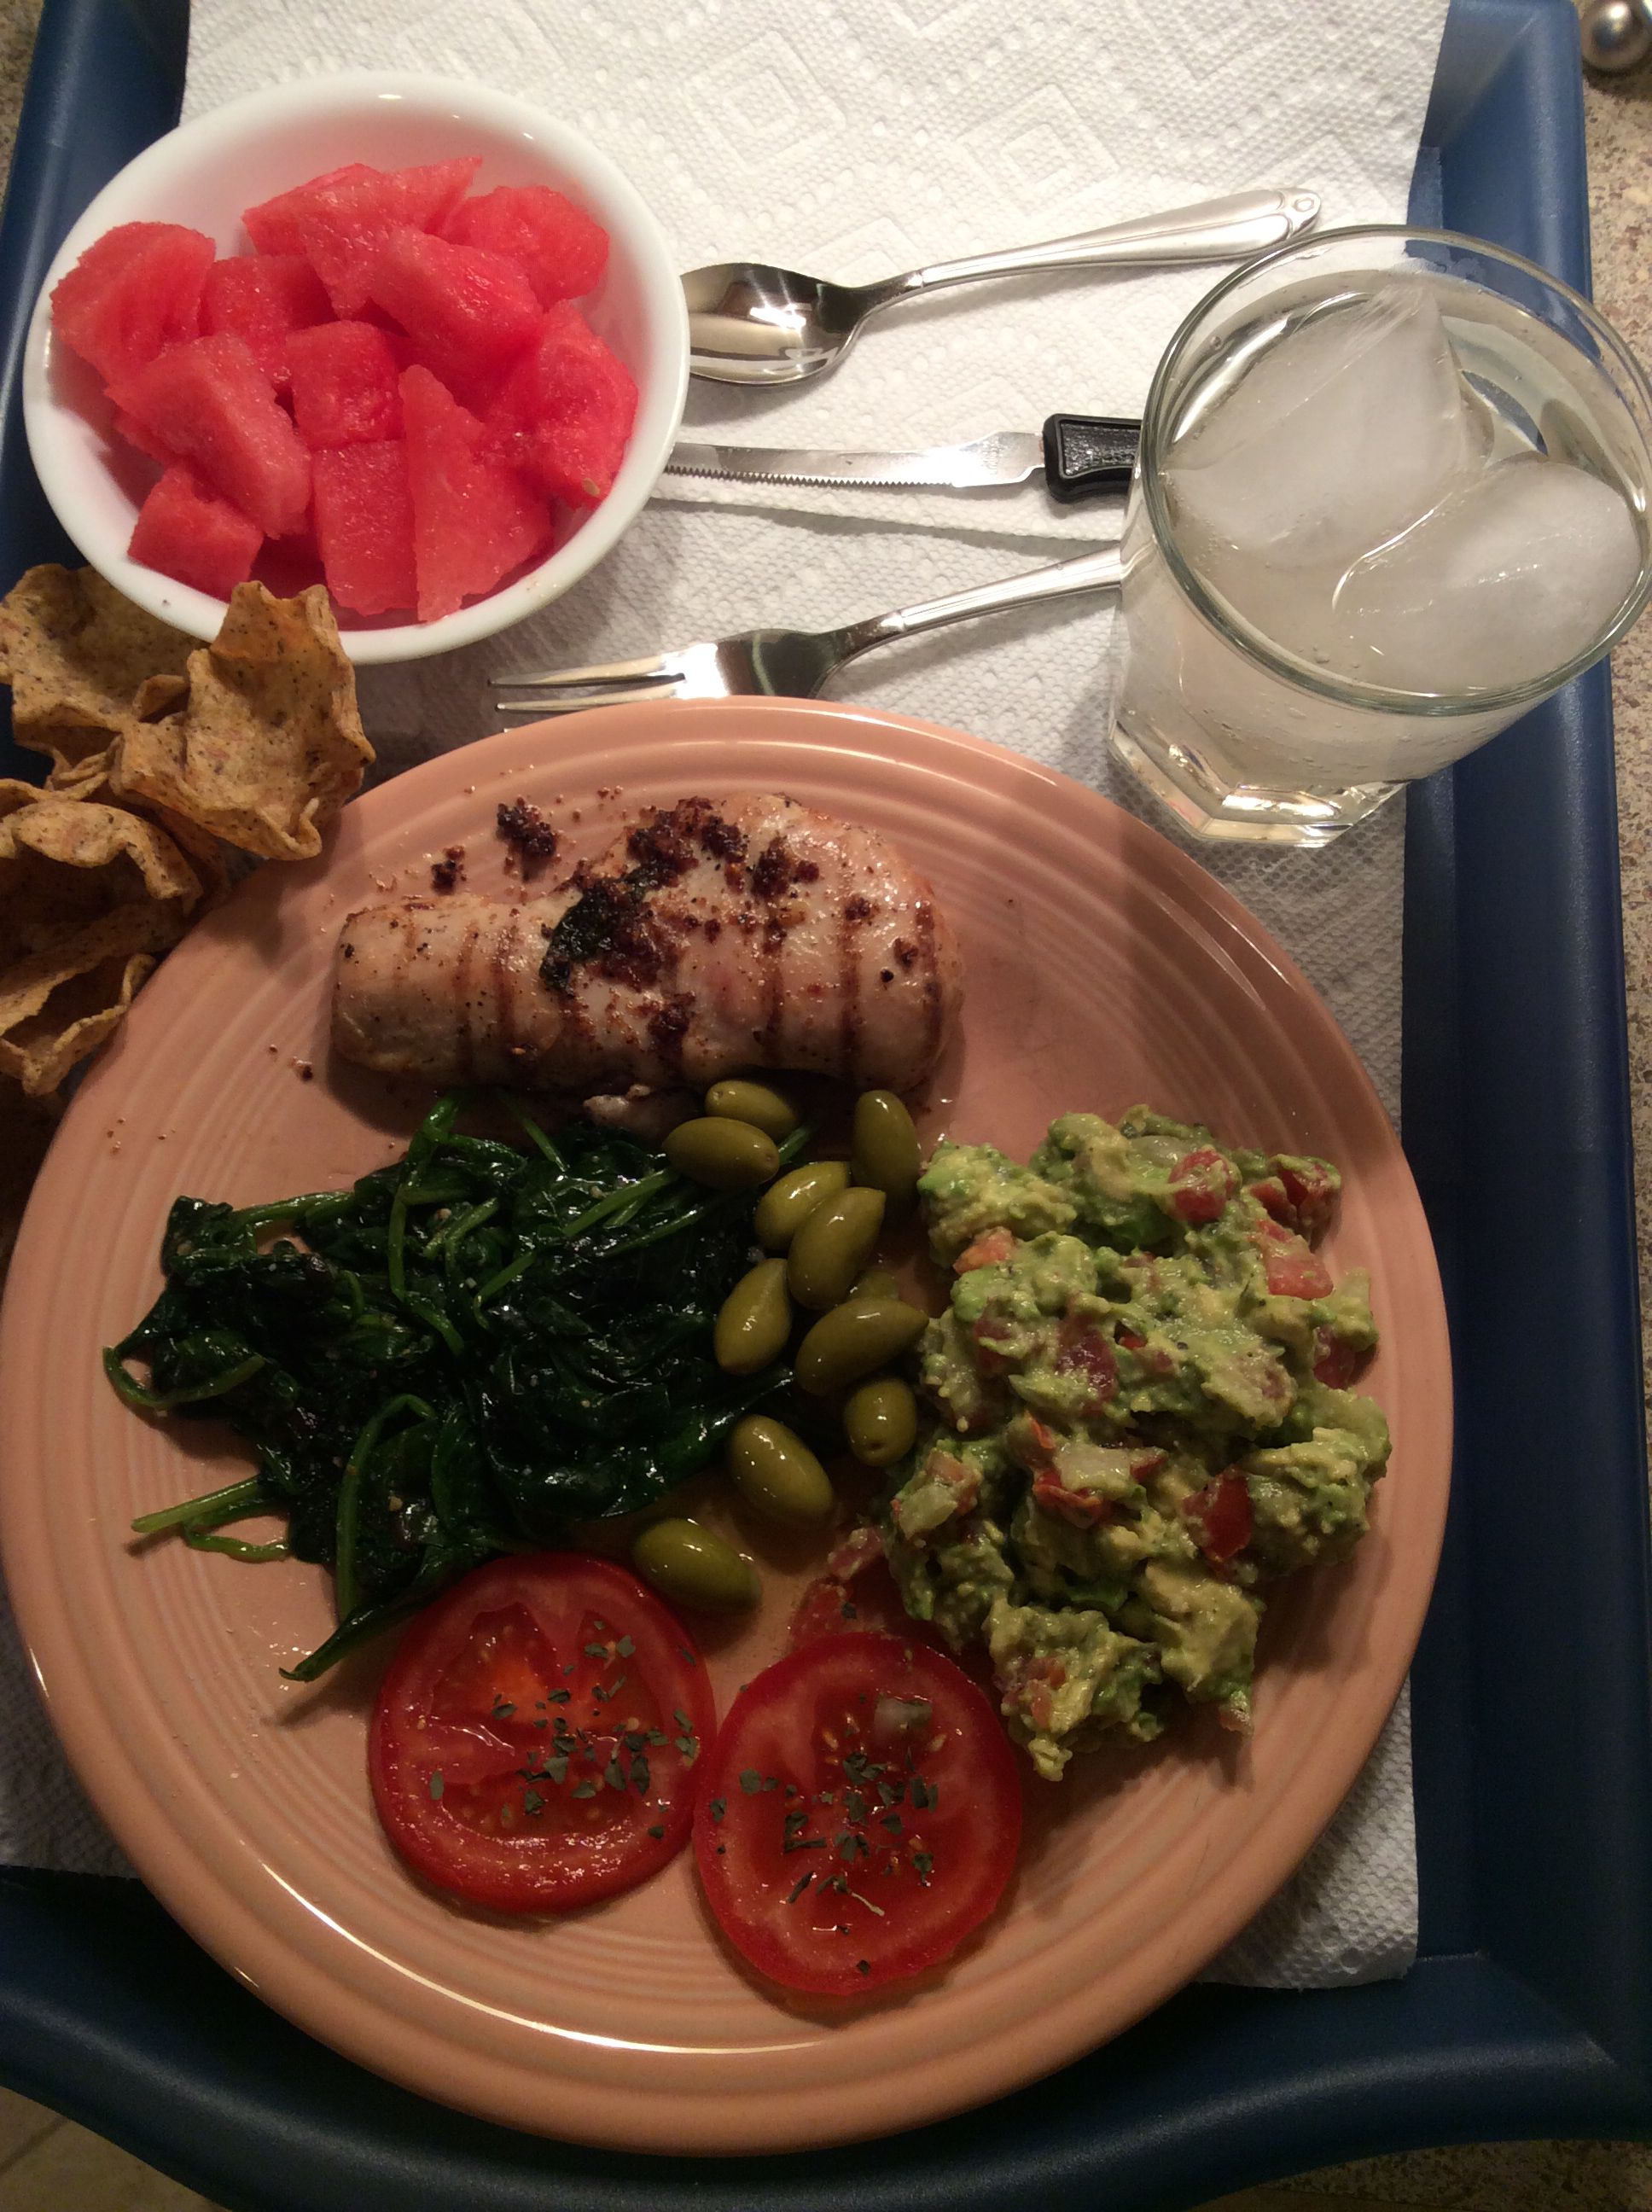 Trader Joes free range chicken made lemon pepper style with guacamole & sautéed spinach.